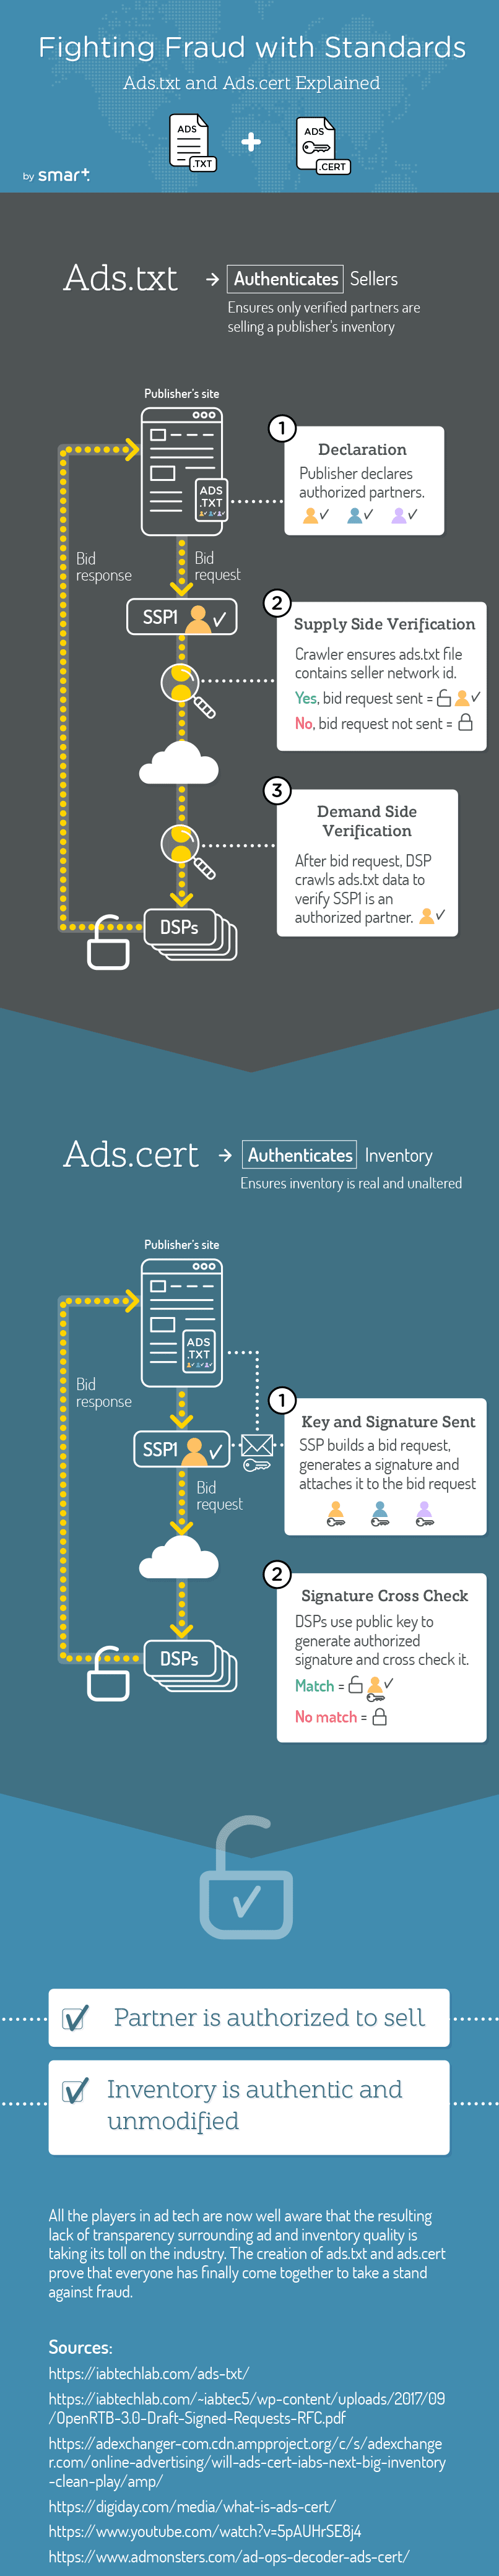 Fighting Fraud With Standards: Ads.txt and Ads.cert #Infographic